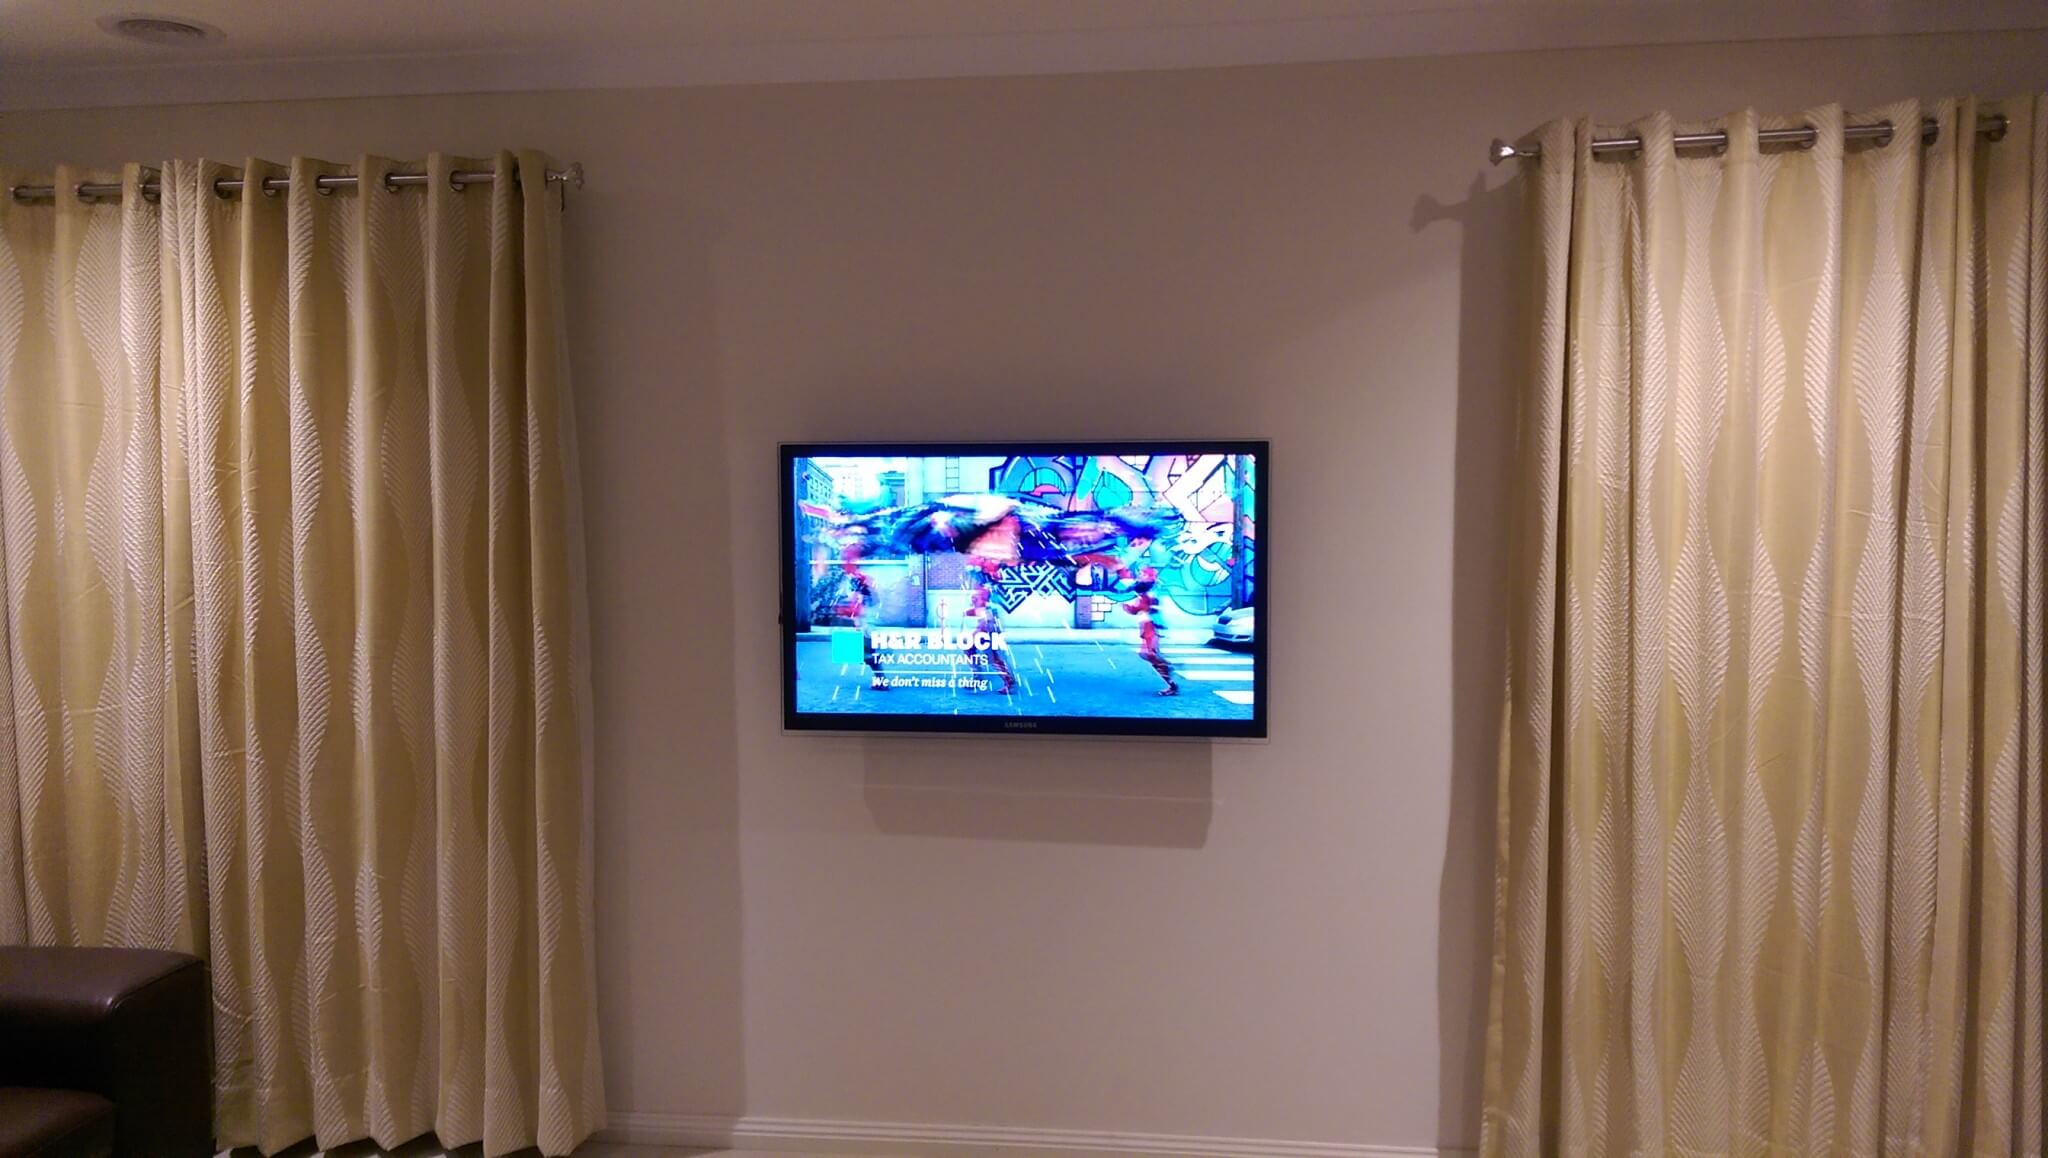 How High To Mount Tv On Wall In Bedroom How To Choose The Right Height For Your Tv Antennify